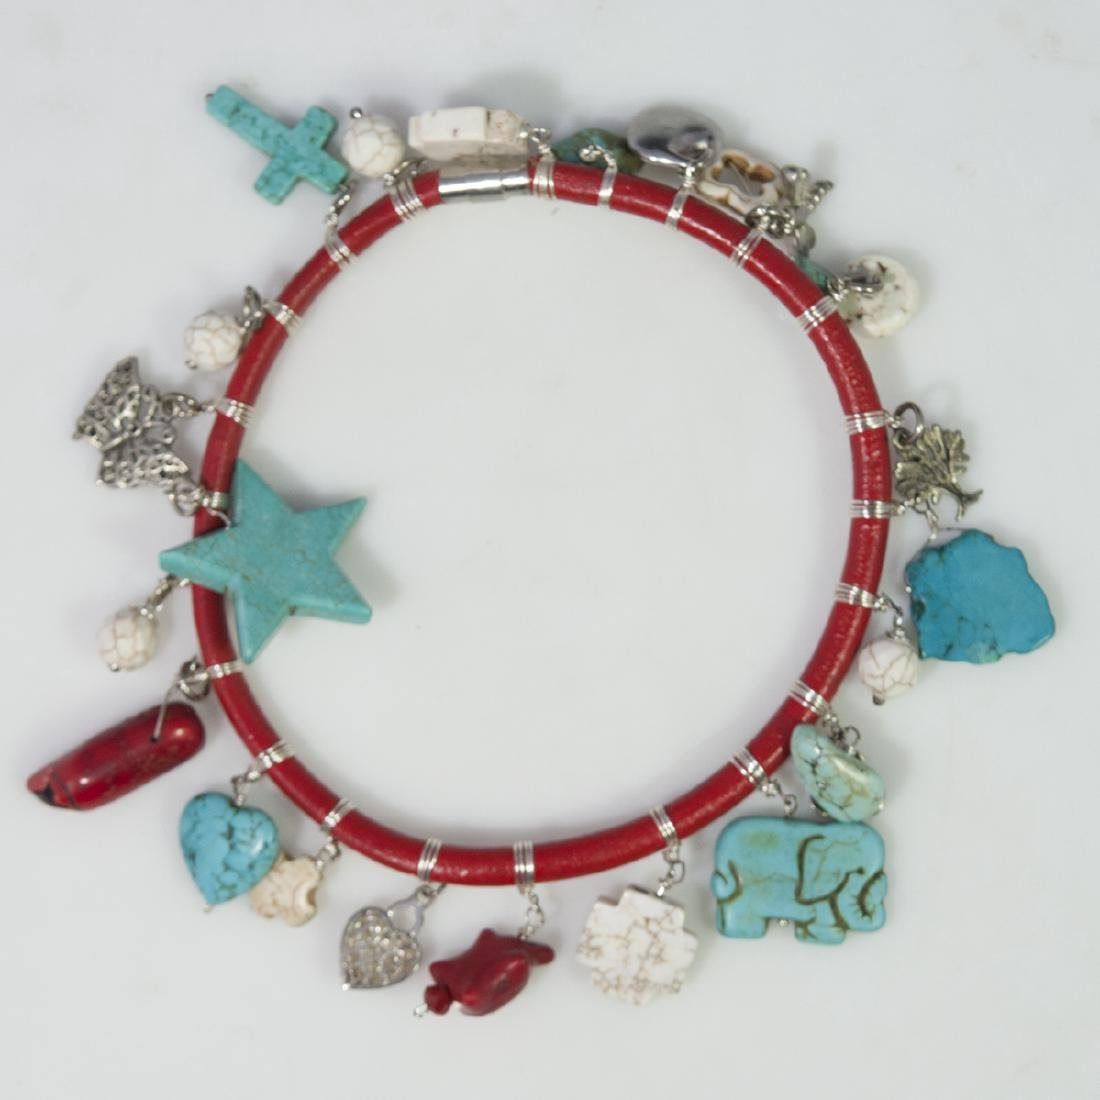 Leather Turquoise Choker Necklace